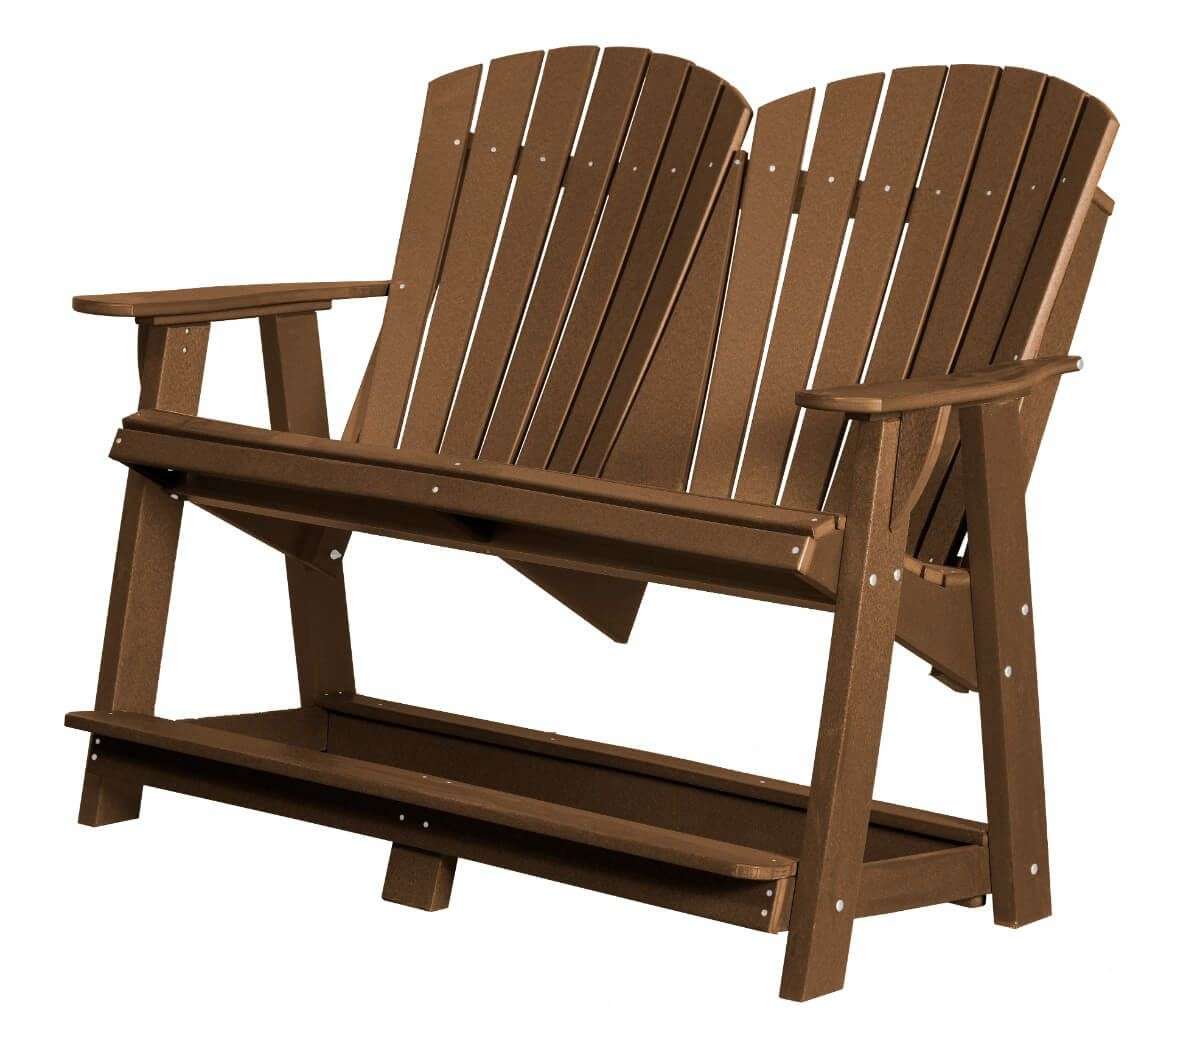 Tudor Brown Sidra Double High Adirondack